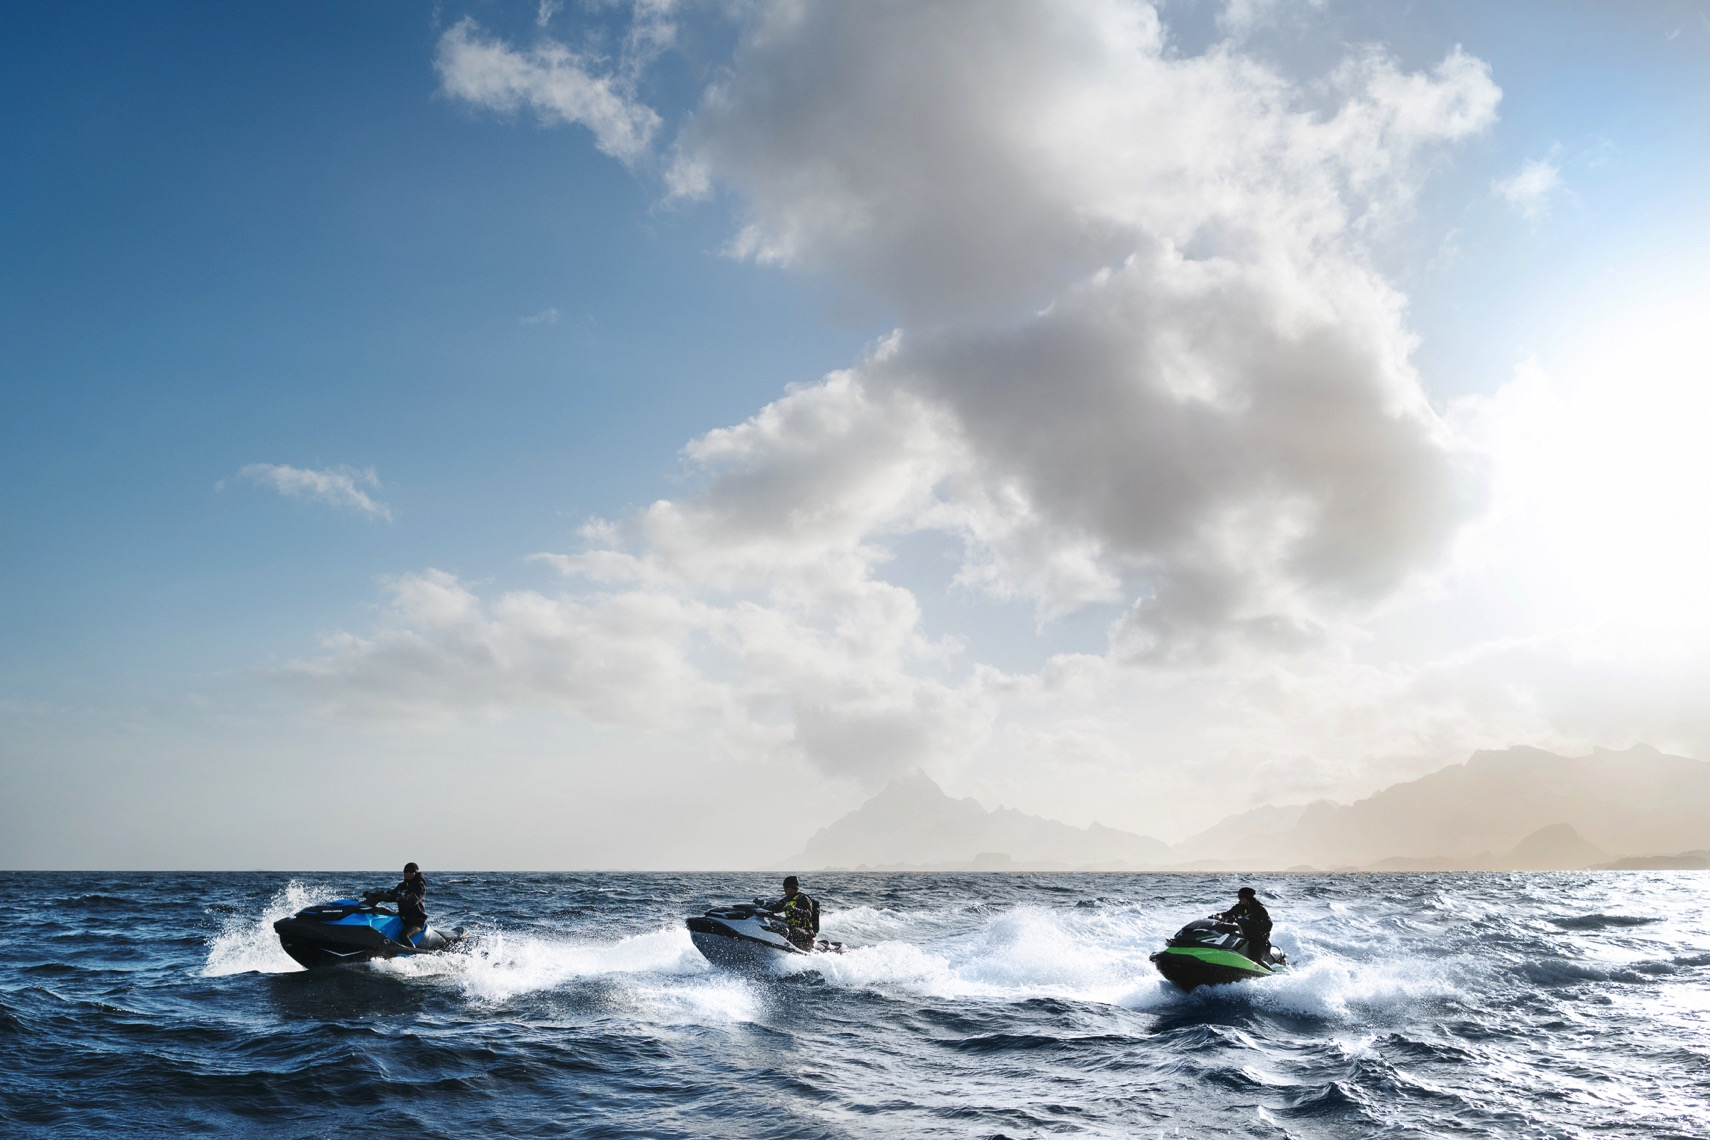 SEA-DOO_NORWAY_5284